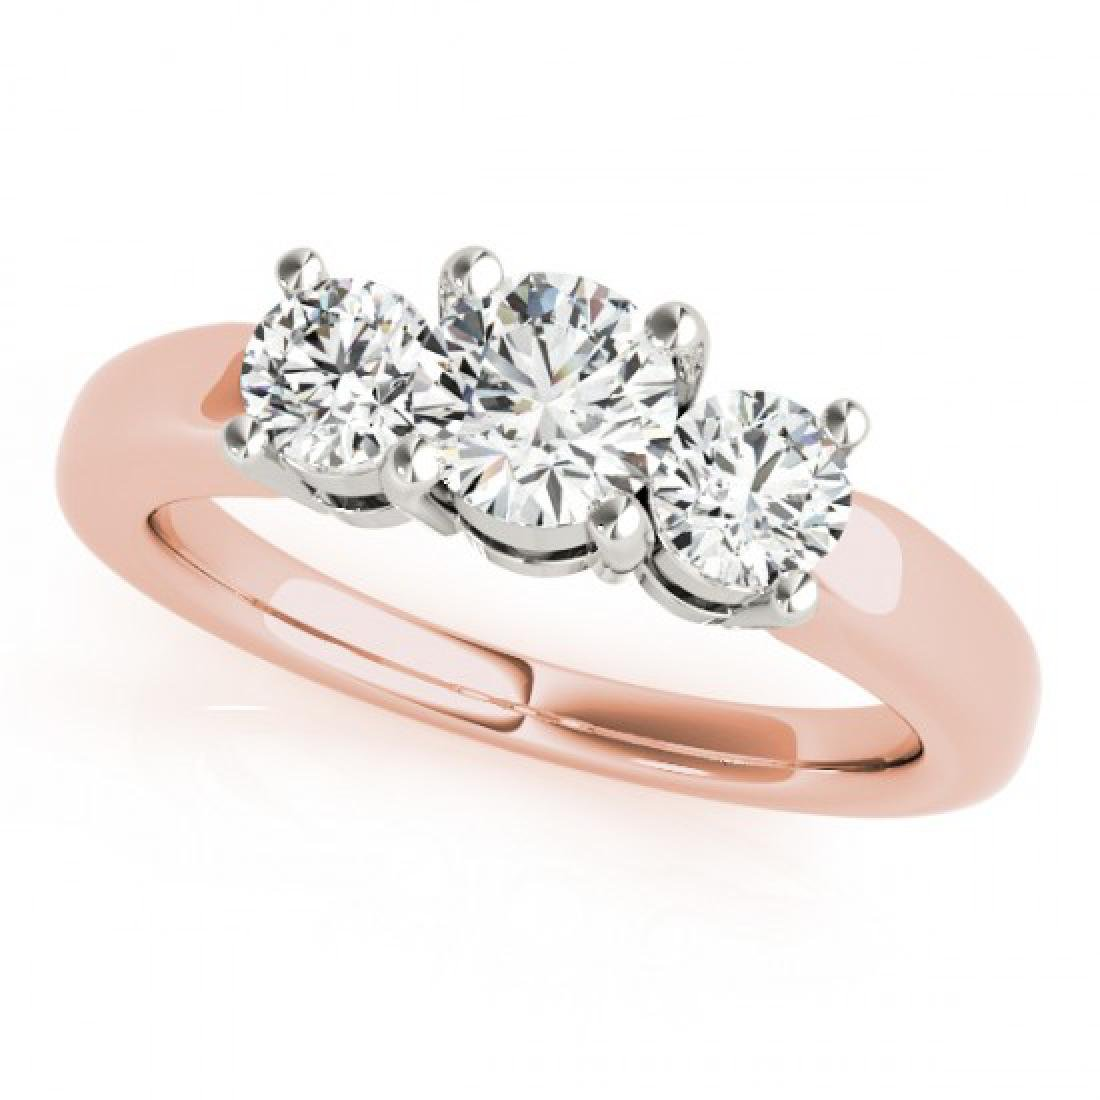 1.33 CTW Certified VS/SI Diamond 3 Stone Ring 14K Rose - 2